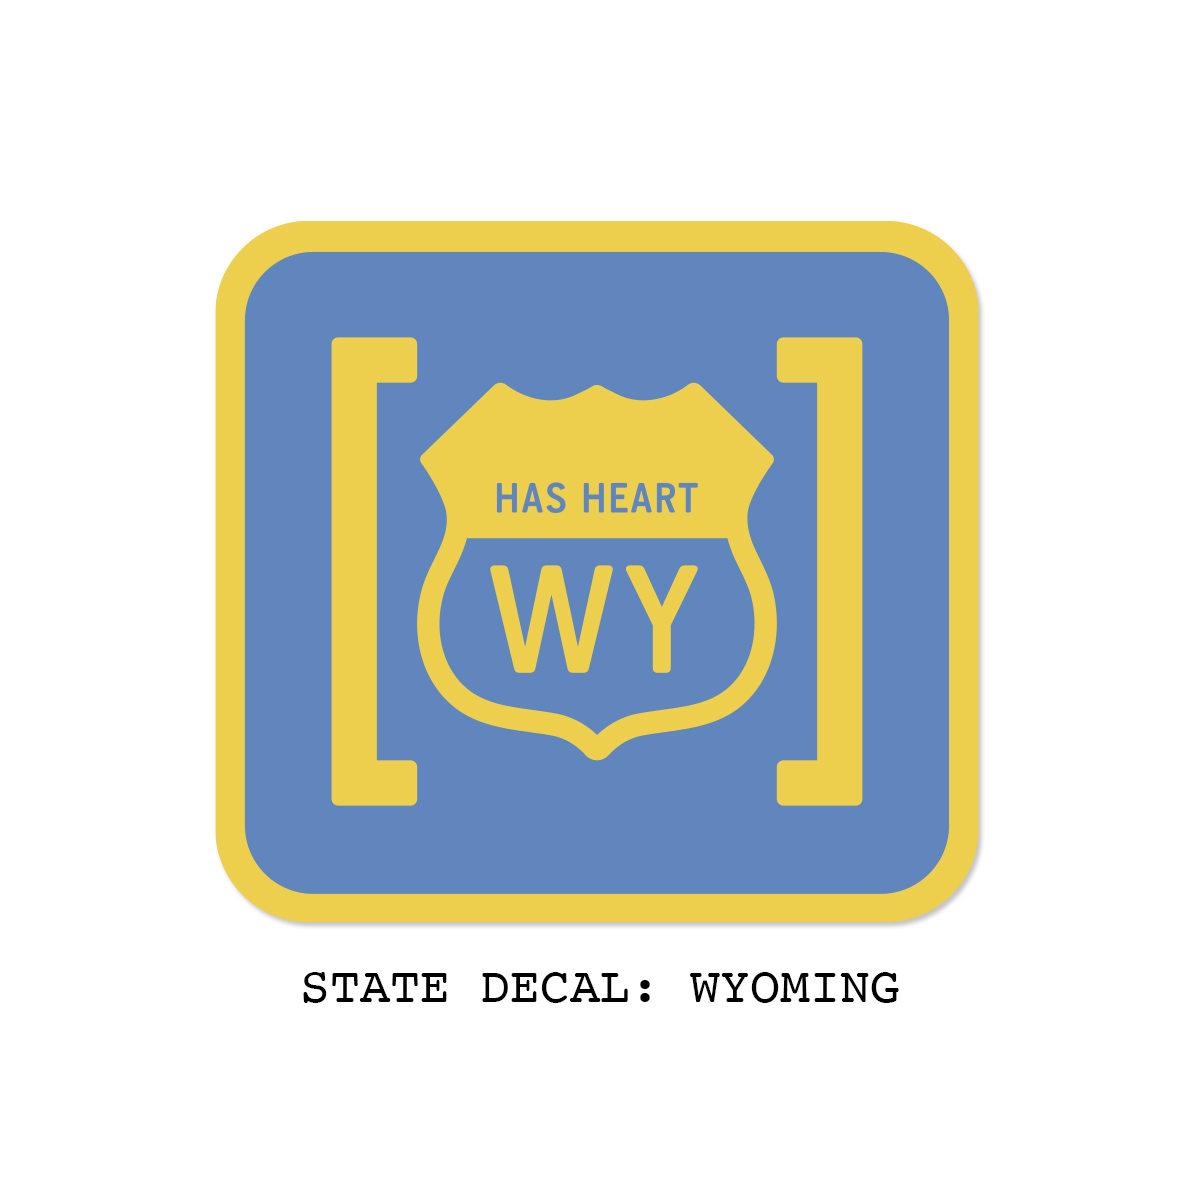 hasheart-statedecal-WY